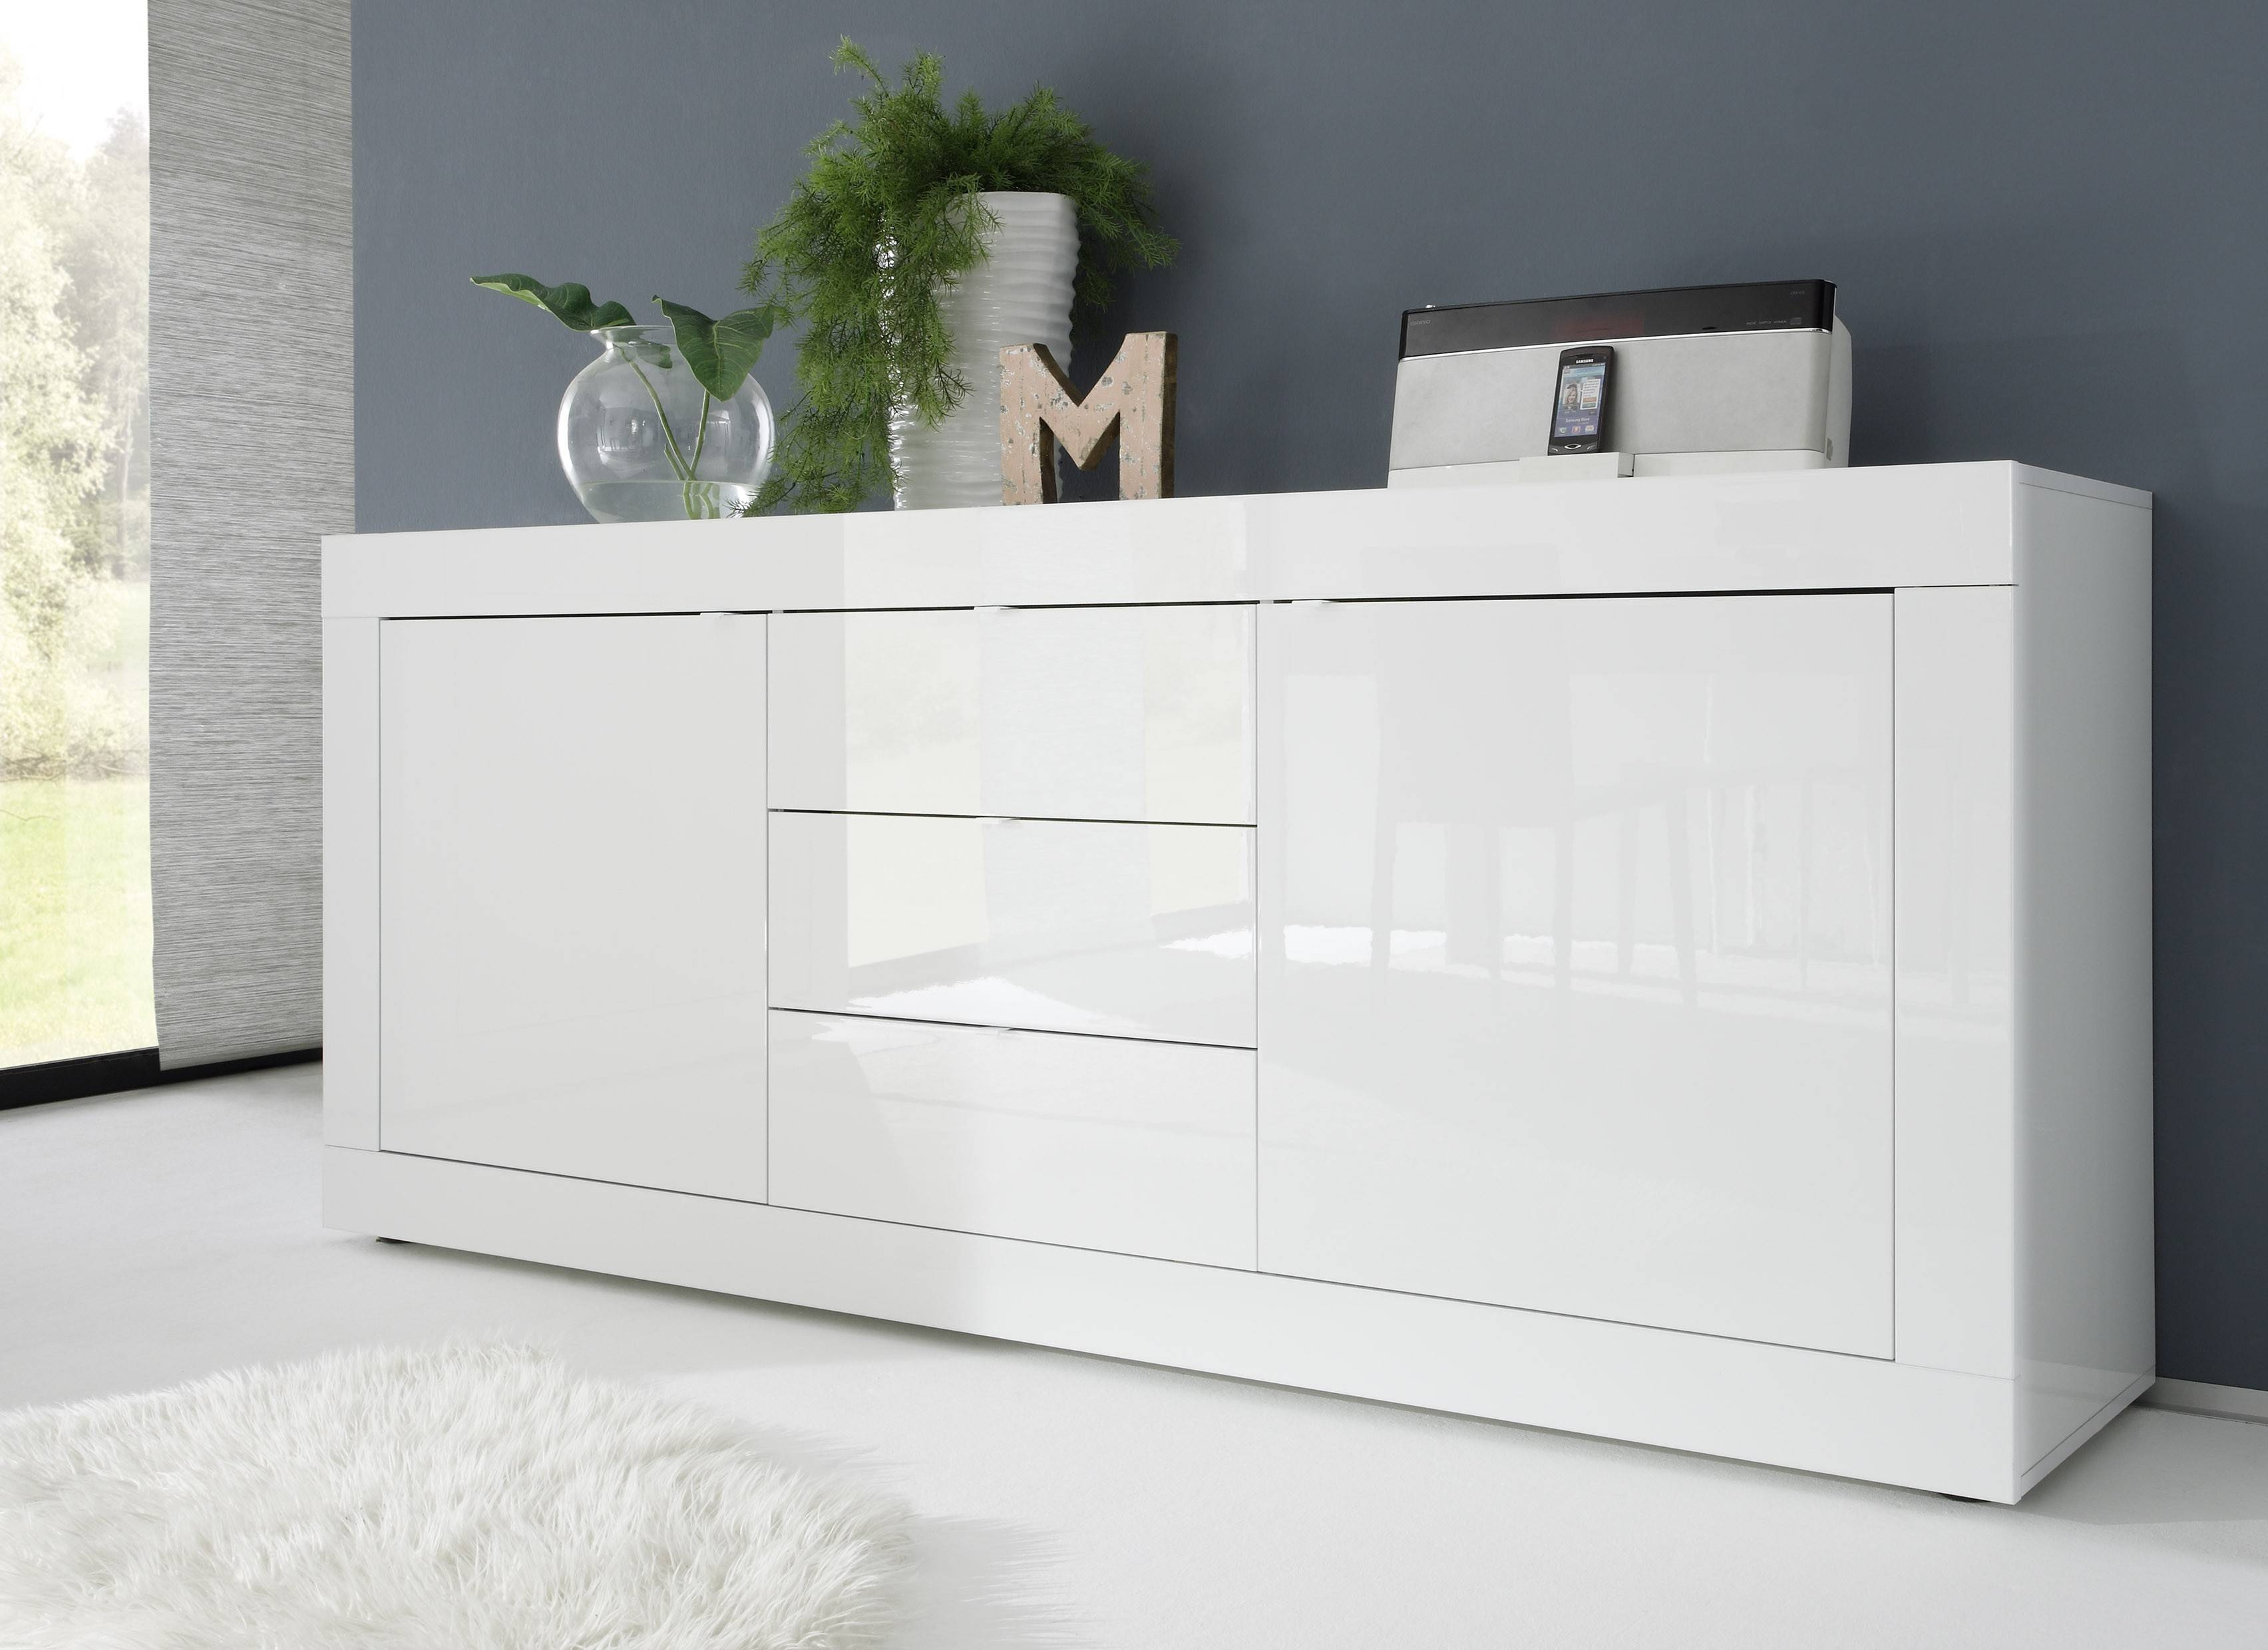 Beautiful Living Room Buffet Gallery Amazing Design Ideas Siteous inside White Modern Sideboards (Image 1 of 30)